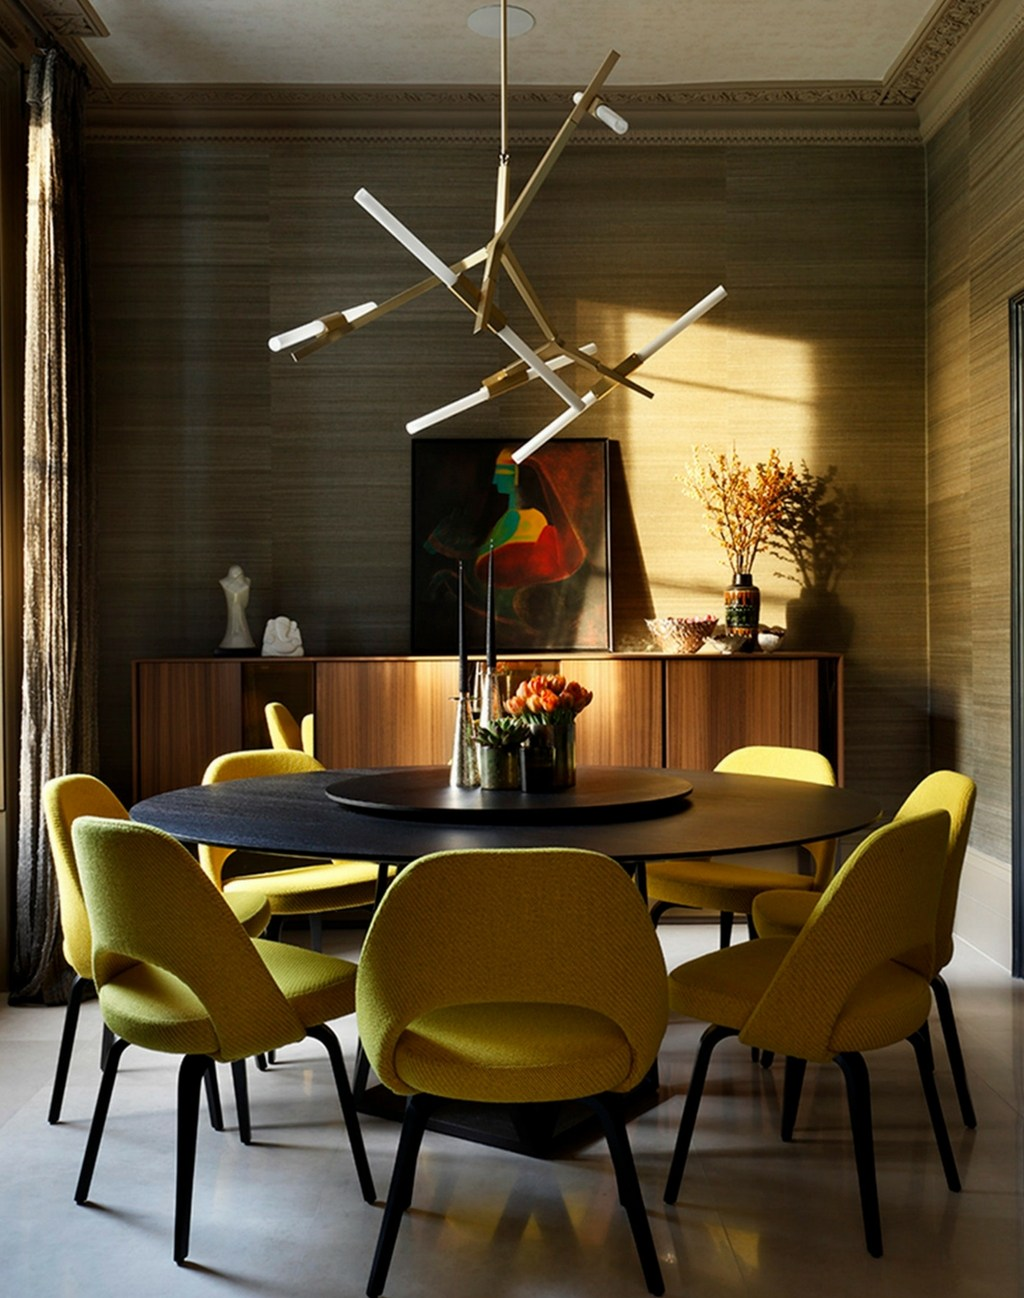 5 steps to get a mid-century dining room